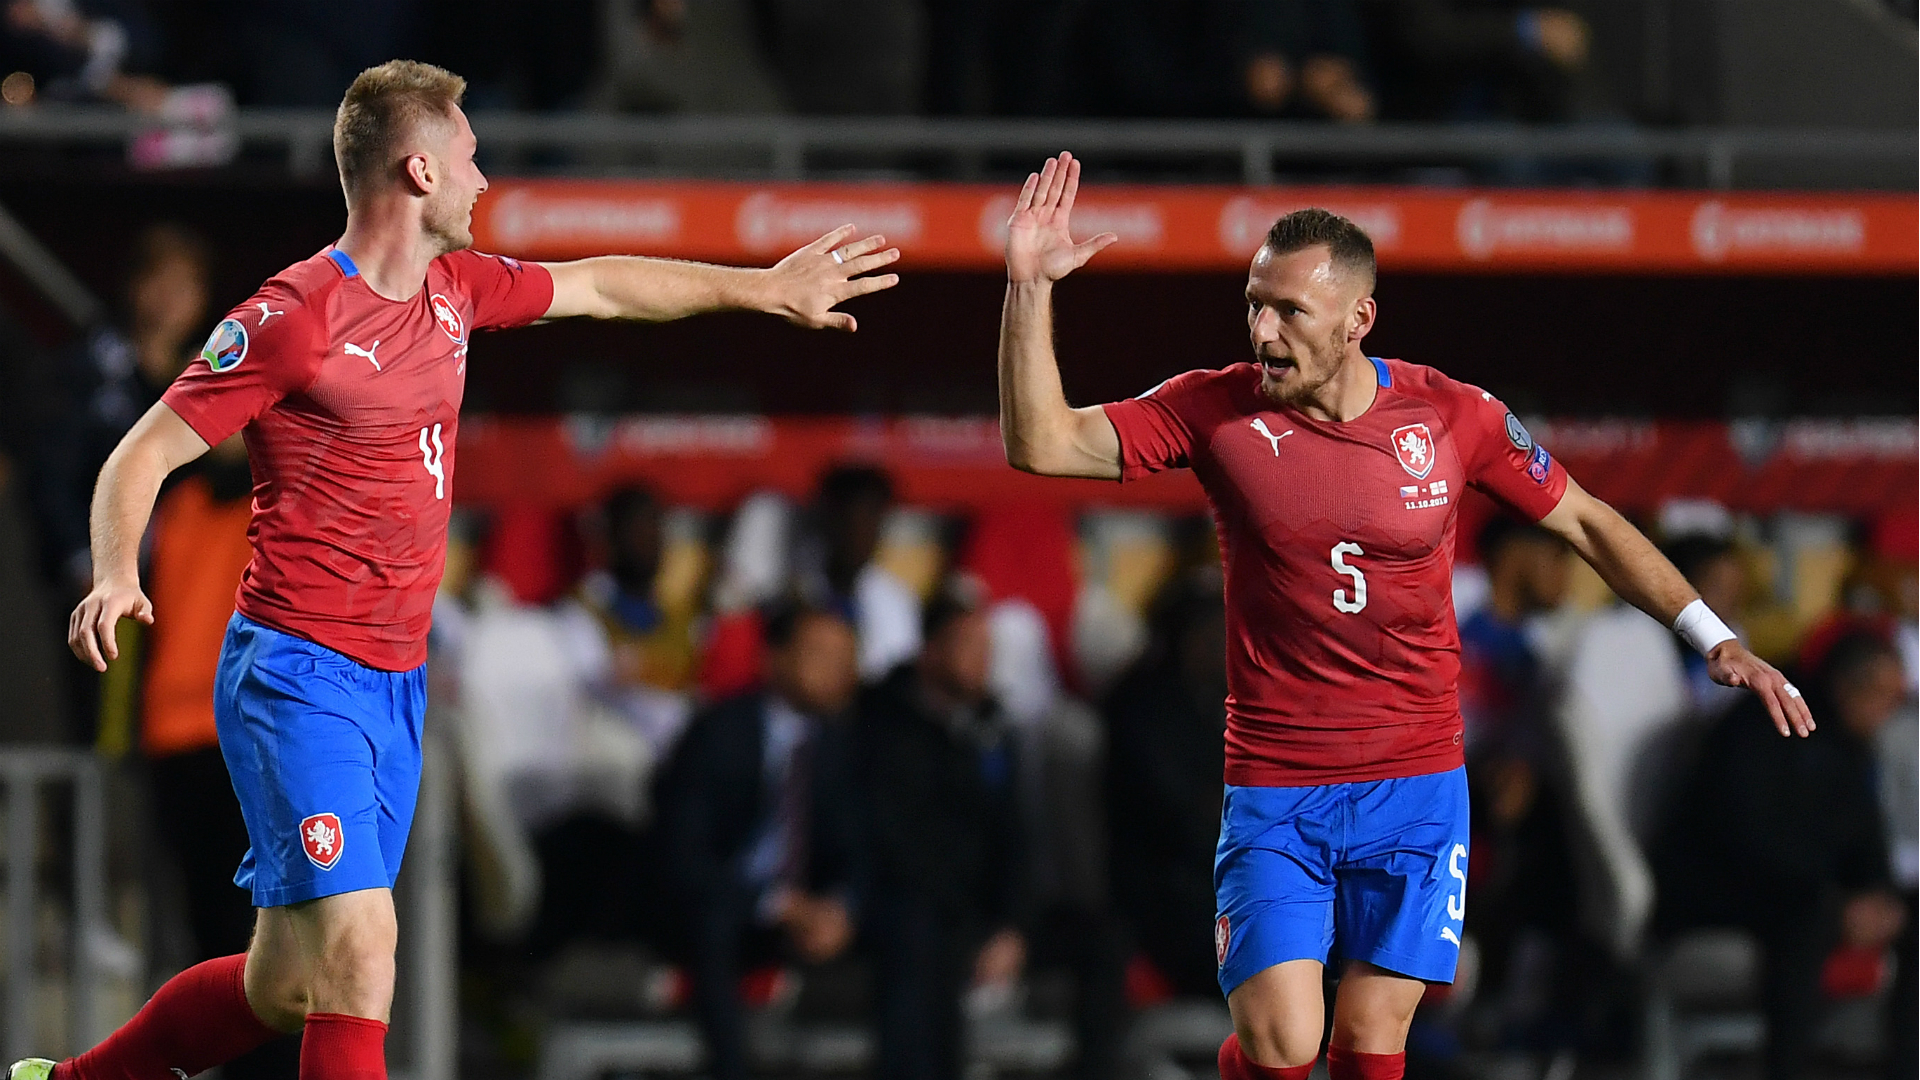 Czech Republic 2-1 England: Comeback win denies Three Lions Euro 2020 qualification